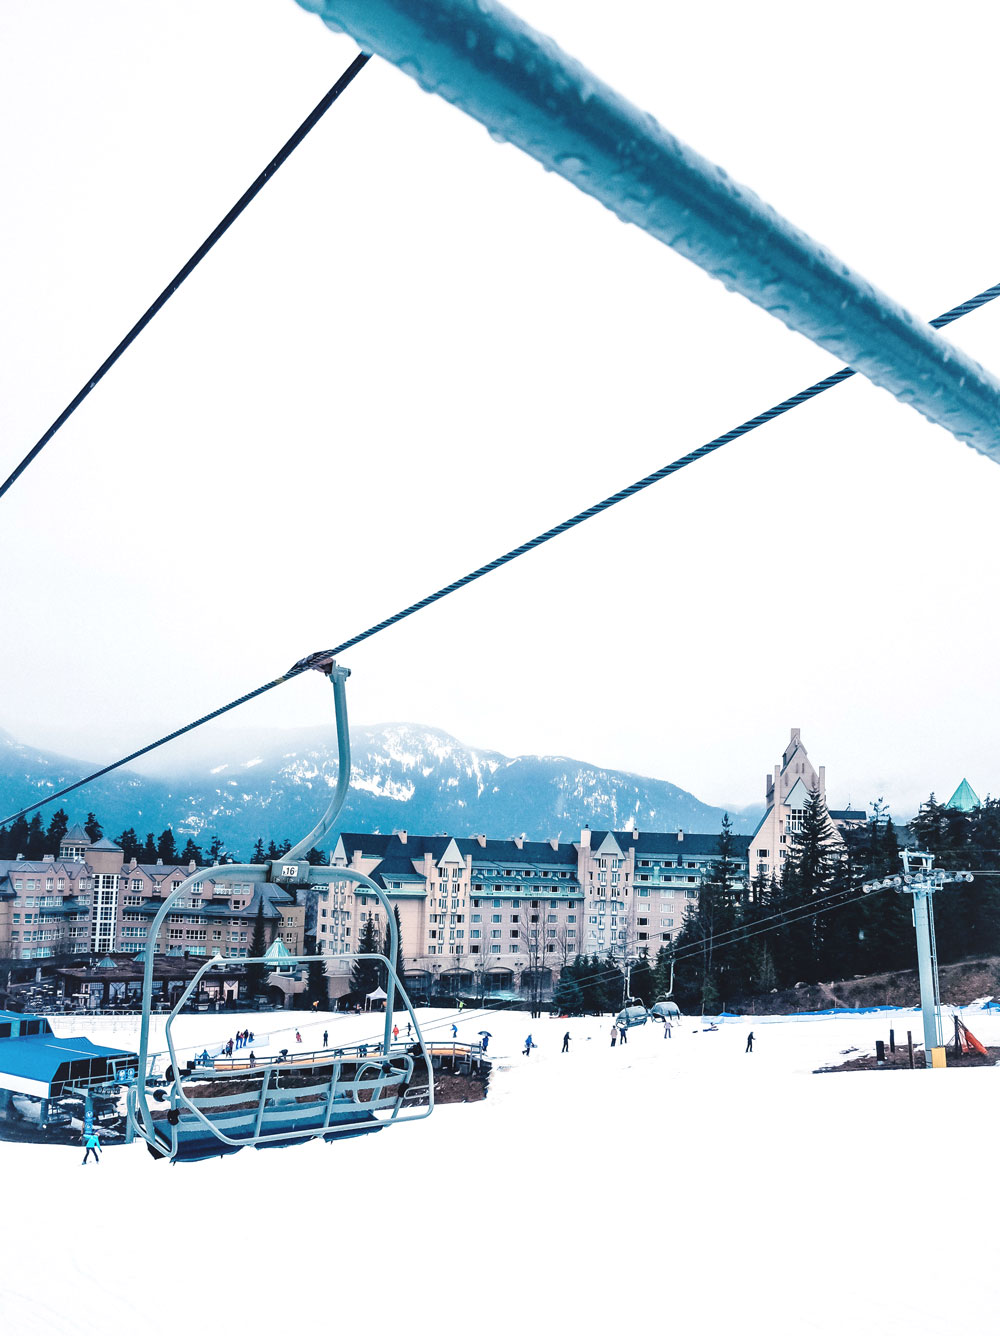 Weekend in Whistler travel guide by To Vogue or Bust - best hotels in Whistler, Fairmont Chateau Whistler, what to do in Whistler, Lost Lake Whistler, what to see in Whistler, Scandinave Spa Whistler, where to ski in Whistler, Blackcomb Mountain, Basalt Whistler, Pure Bread Whistler, Canadian travel blogger, Vancouver travel blogger, best places to stay in Whistler, what to do in Whistler in a weekend